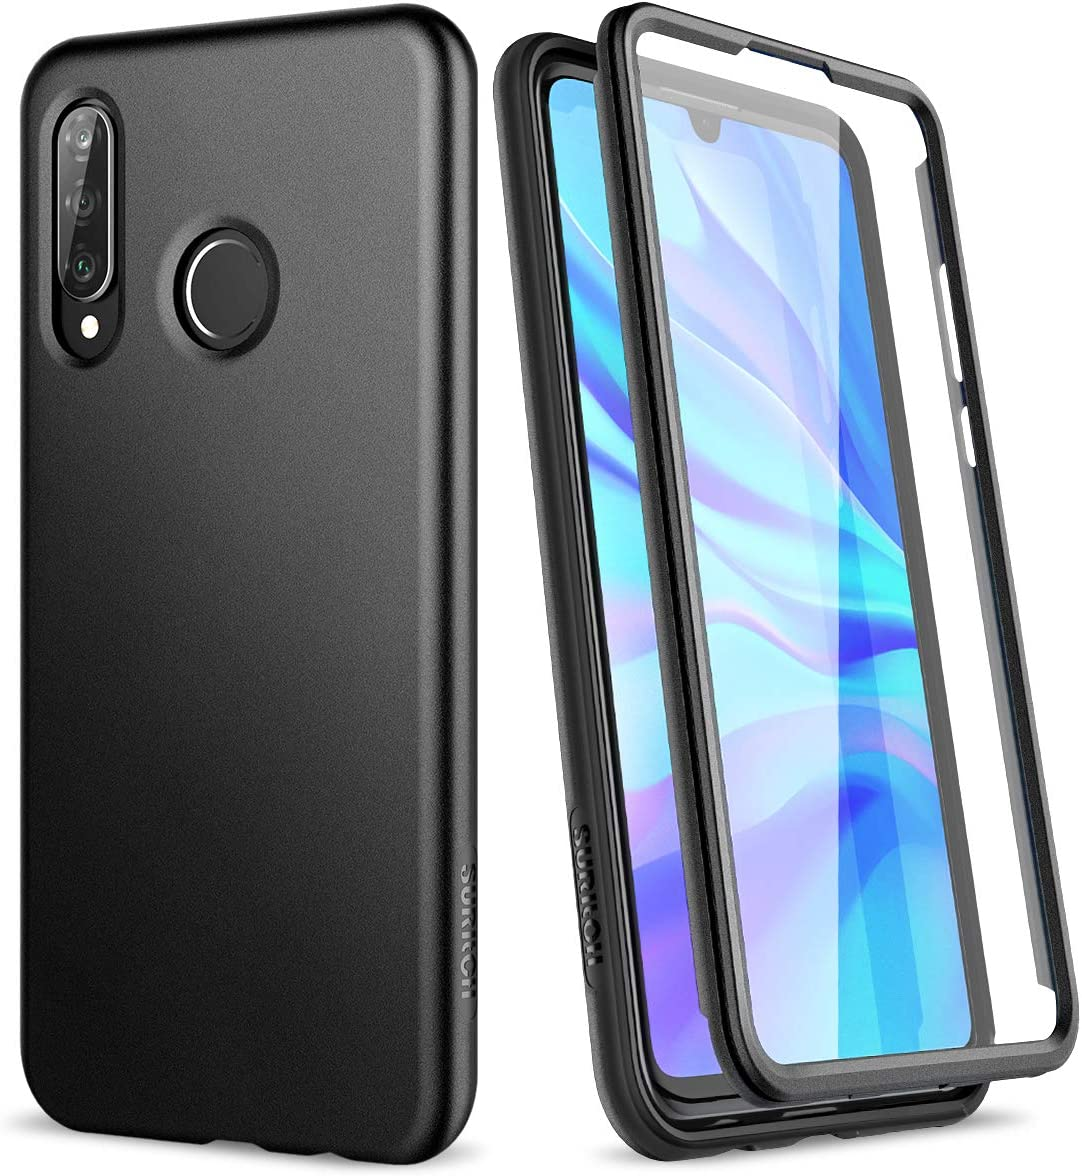 SURITCH Case for Huawei P30 Lite,[Built-in Screen Protector] Marble Shockproof Rugged 360 Full Body Bumper Protective Cover for Huawei P30 Lite